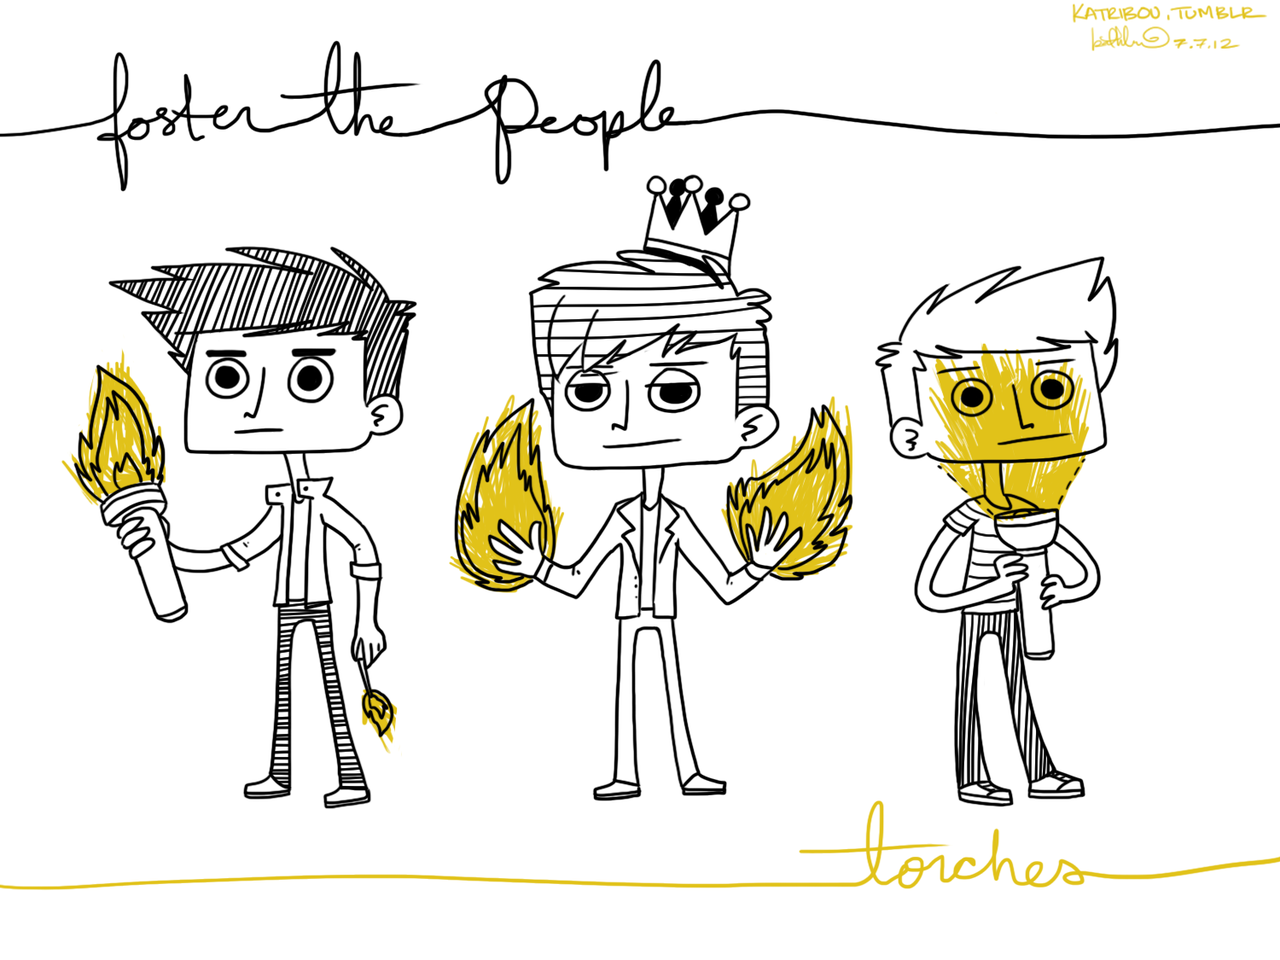 katribou:  Here's to the Foster the People, Torches Era: May 23rd, 2011 - July 7th, 2012